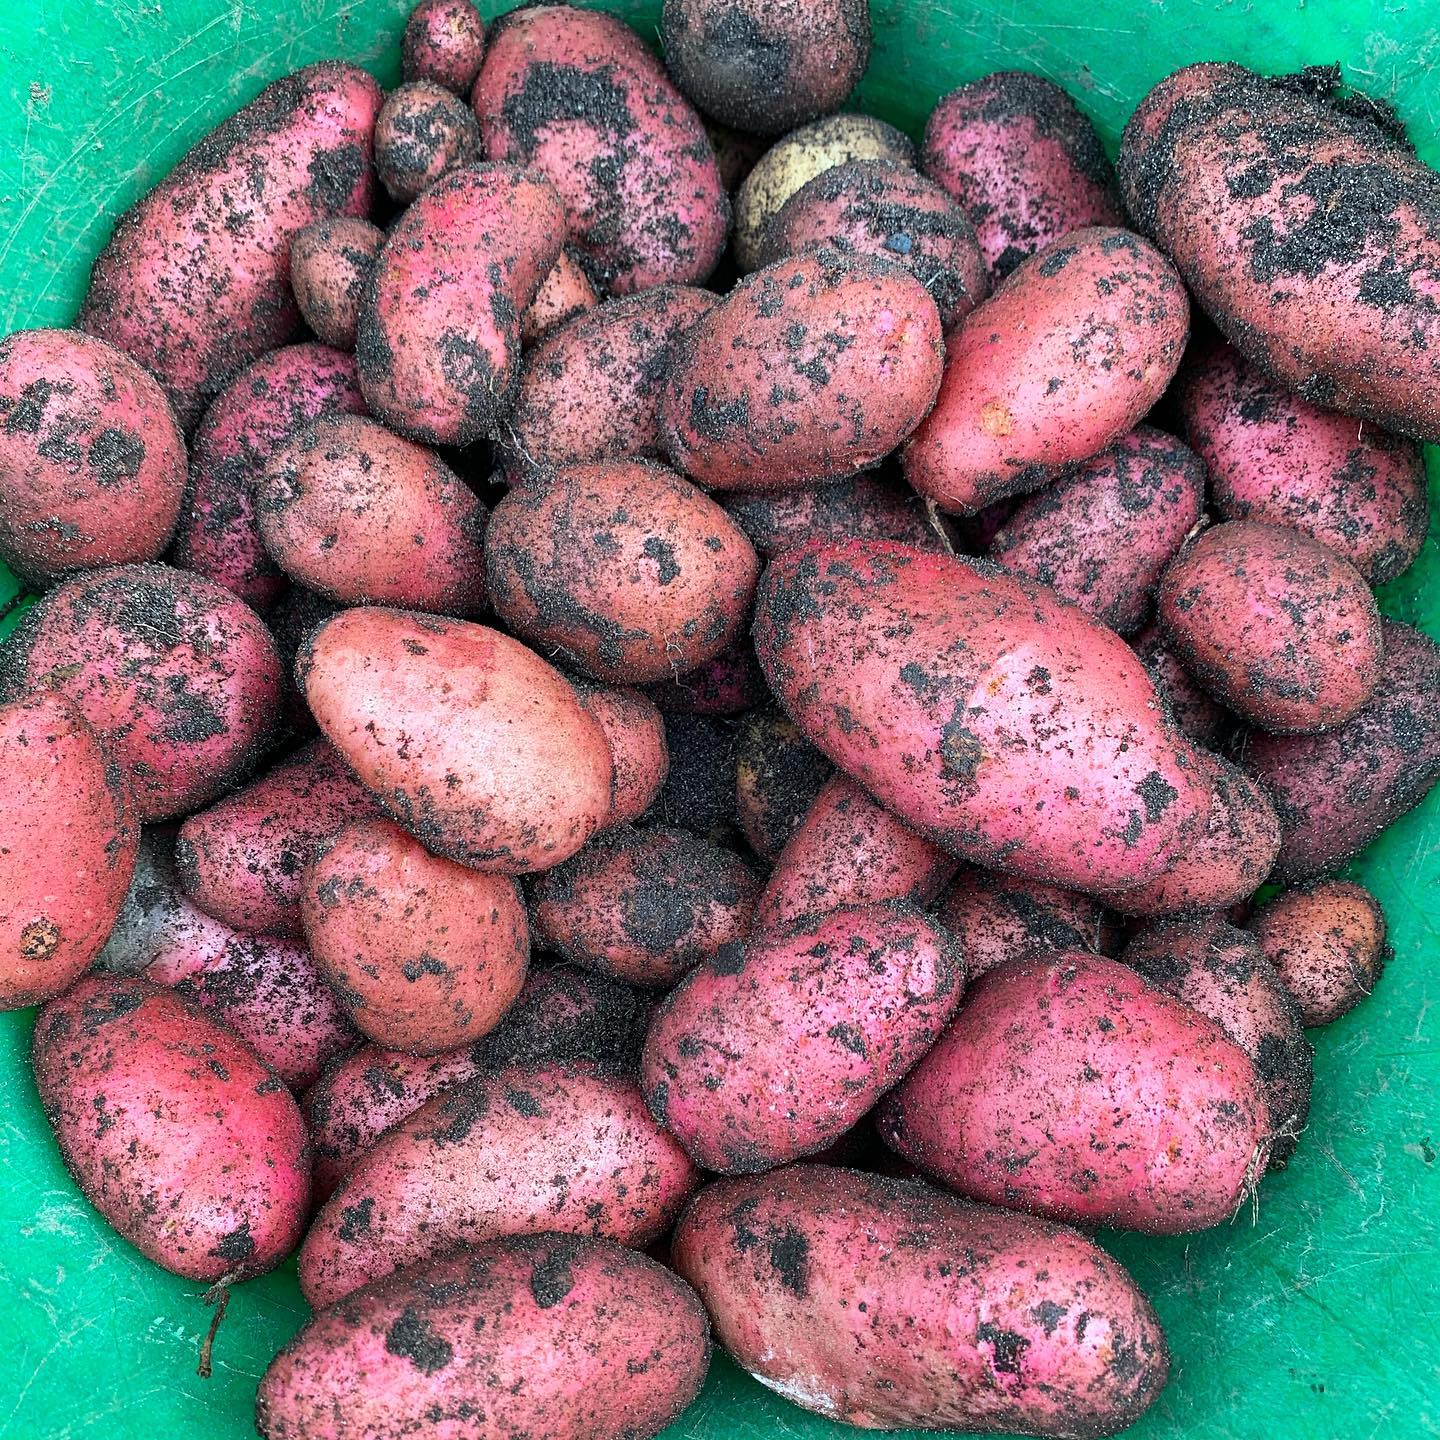 Digging the remaining potatoes. Ruby nuggets of spud goodness. Desiree potatoes 🥔